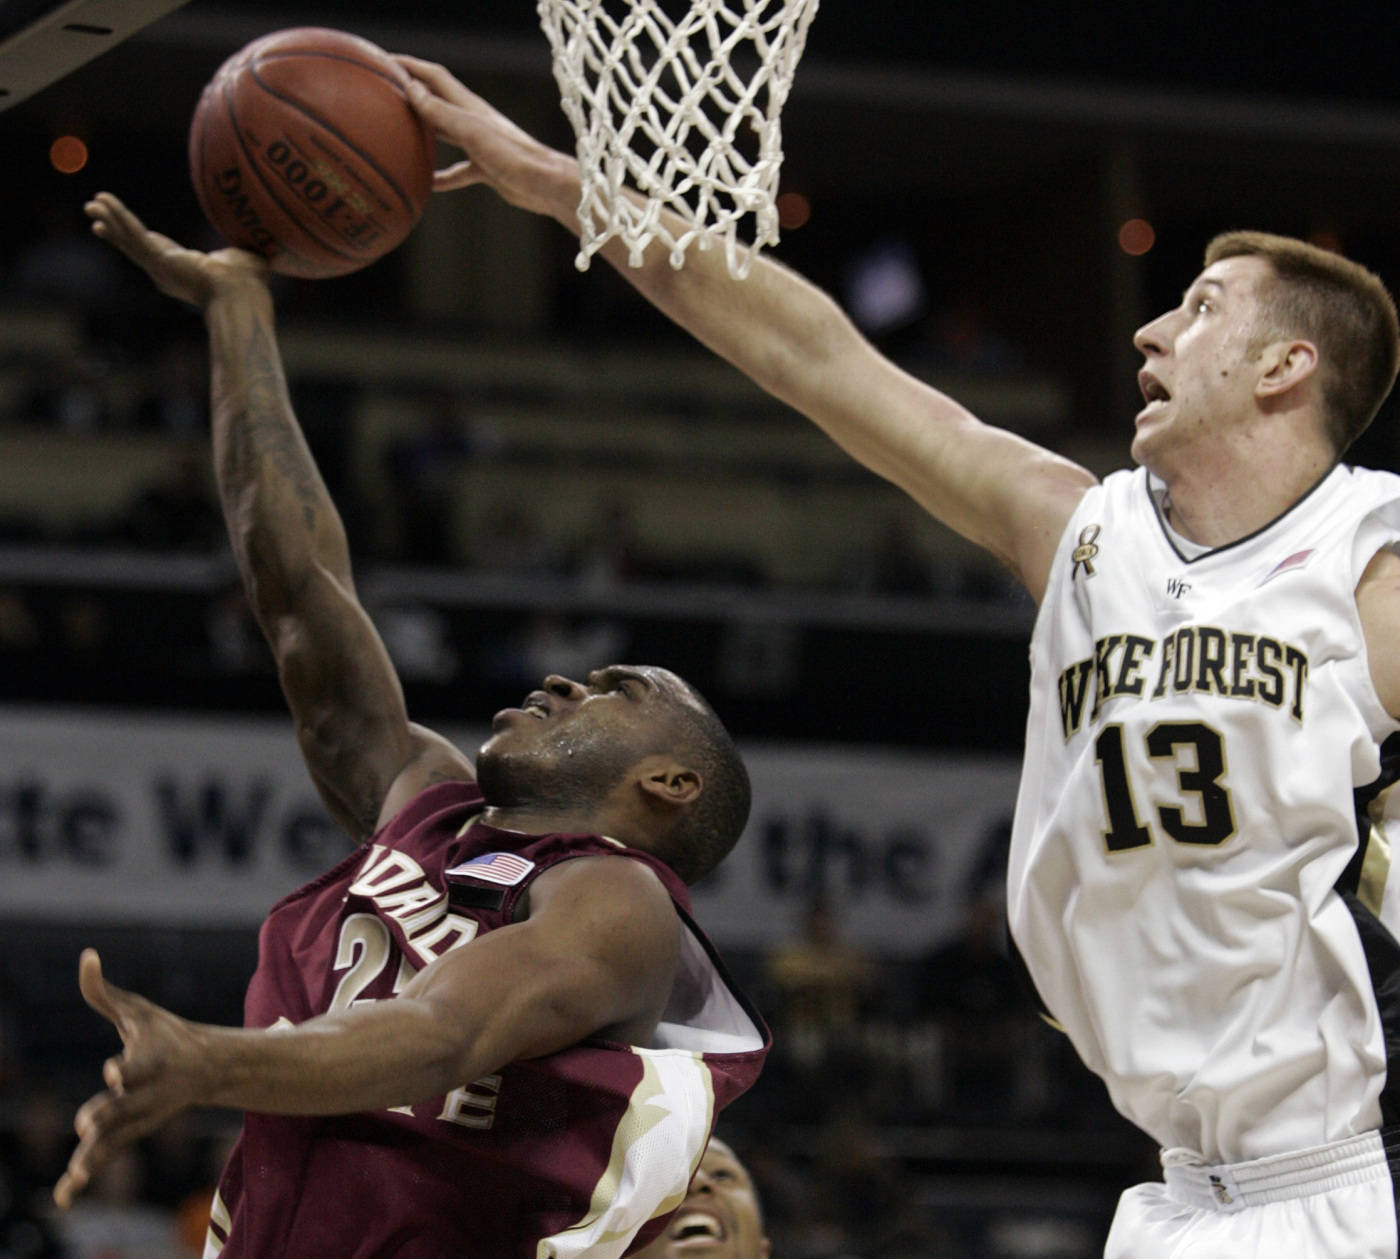 Wake Forest's Chas McFarland blocks the shot of Jason Rich in the first half. (AP Photo/Steve Helber)